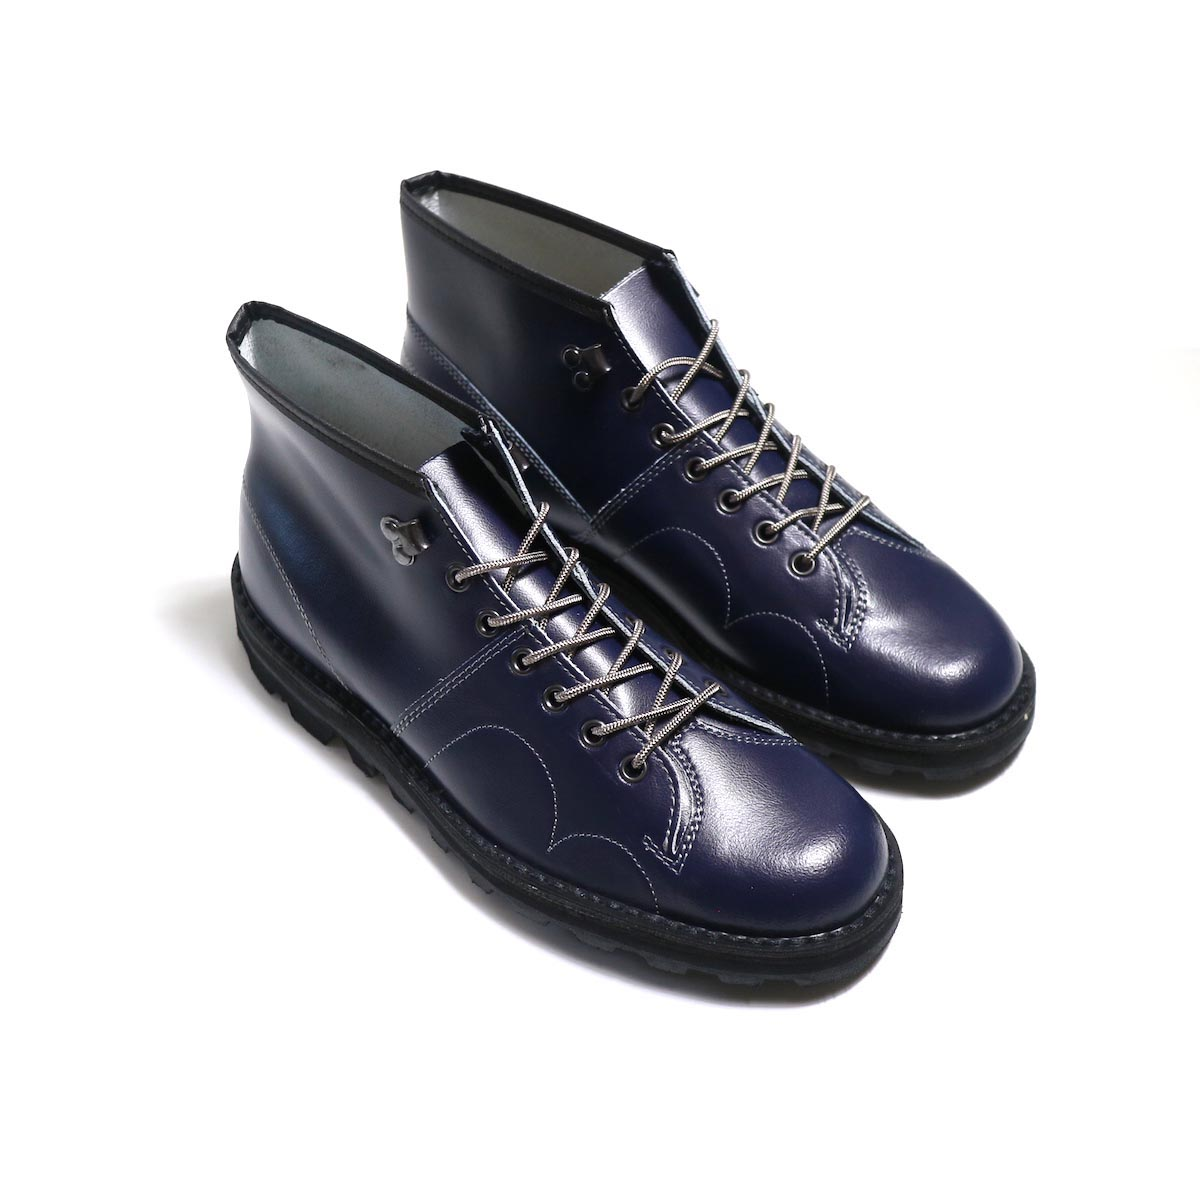 REPRODUCTION OF FOUND / CZECHO SLOVAKIA MILITARY BOOTS -NAVY